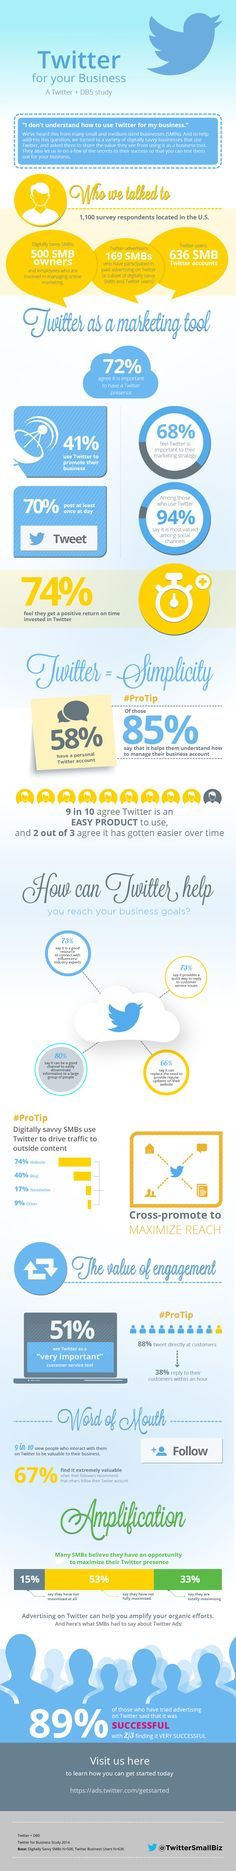 How To Use #Twitter For Your #Business - #infographic #socialmedia